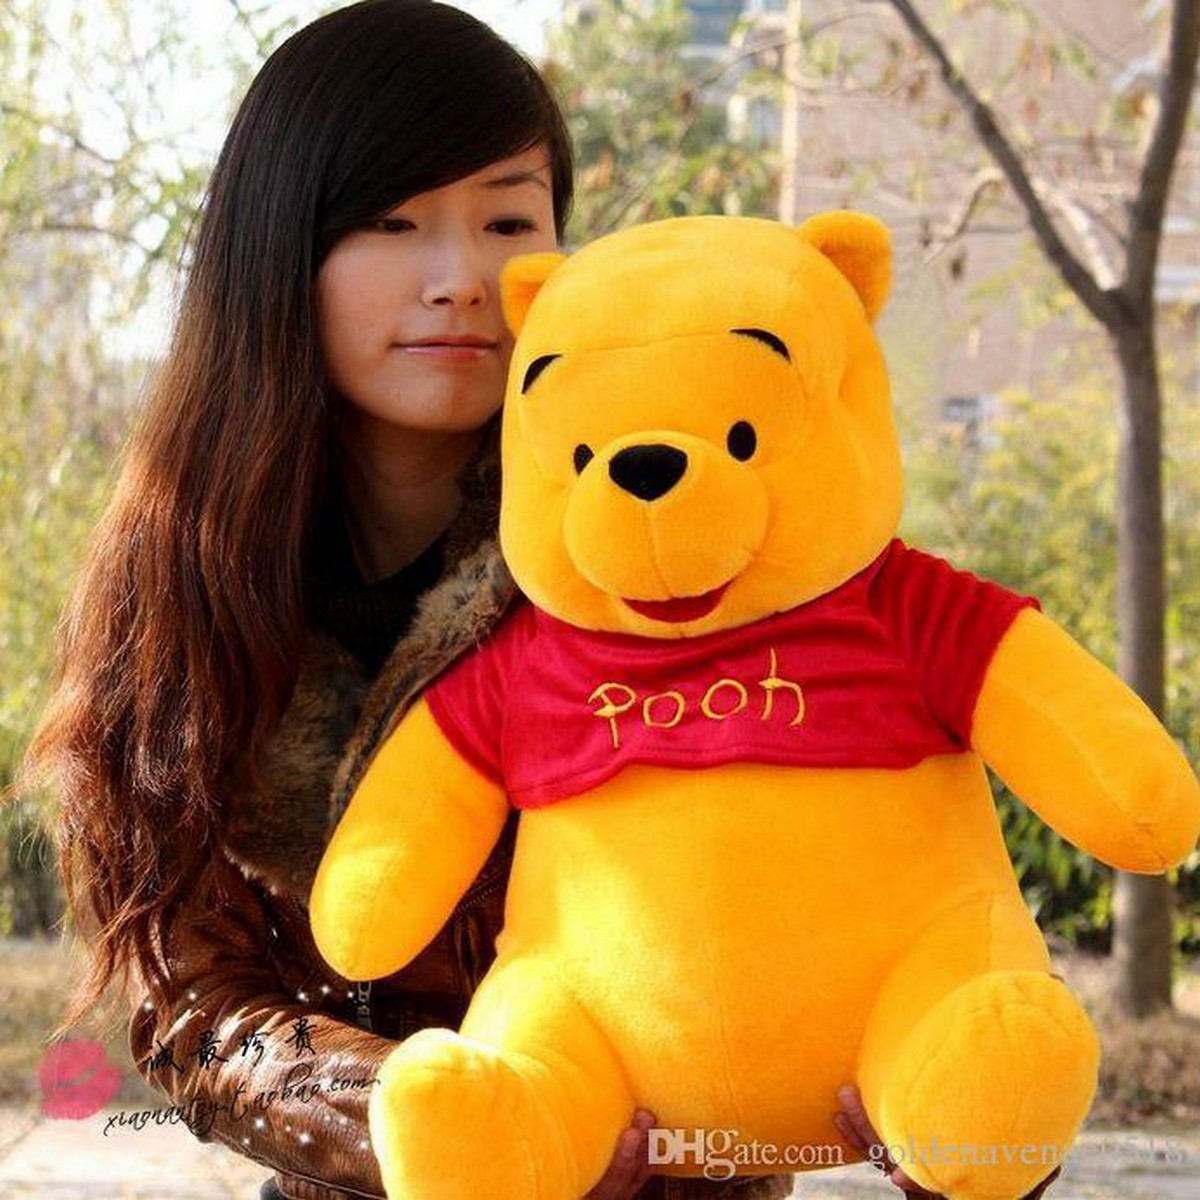 High Quality Winnie The Pooh Stuffed Toy Teddy Bear Baby Lovely Plush Doll Soft Pillow Children Kids Gift Valentines Gift Love Teddy Bear Girl Birthdays Party Gifts Bed Toy Pillow (Available in 9 Inch / 11 Inch / 16 Inch / 22 Inch / 36 Inch )